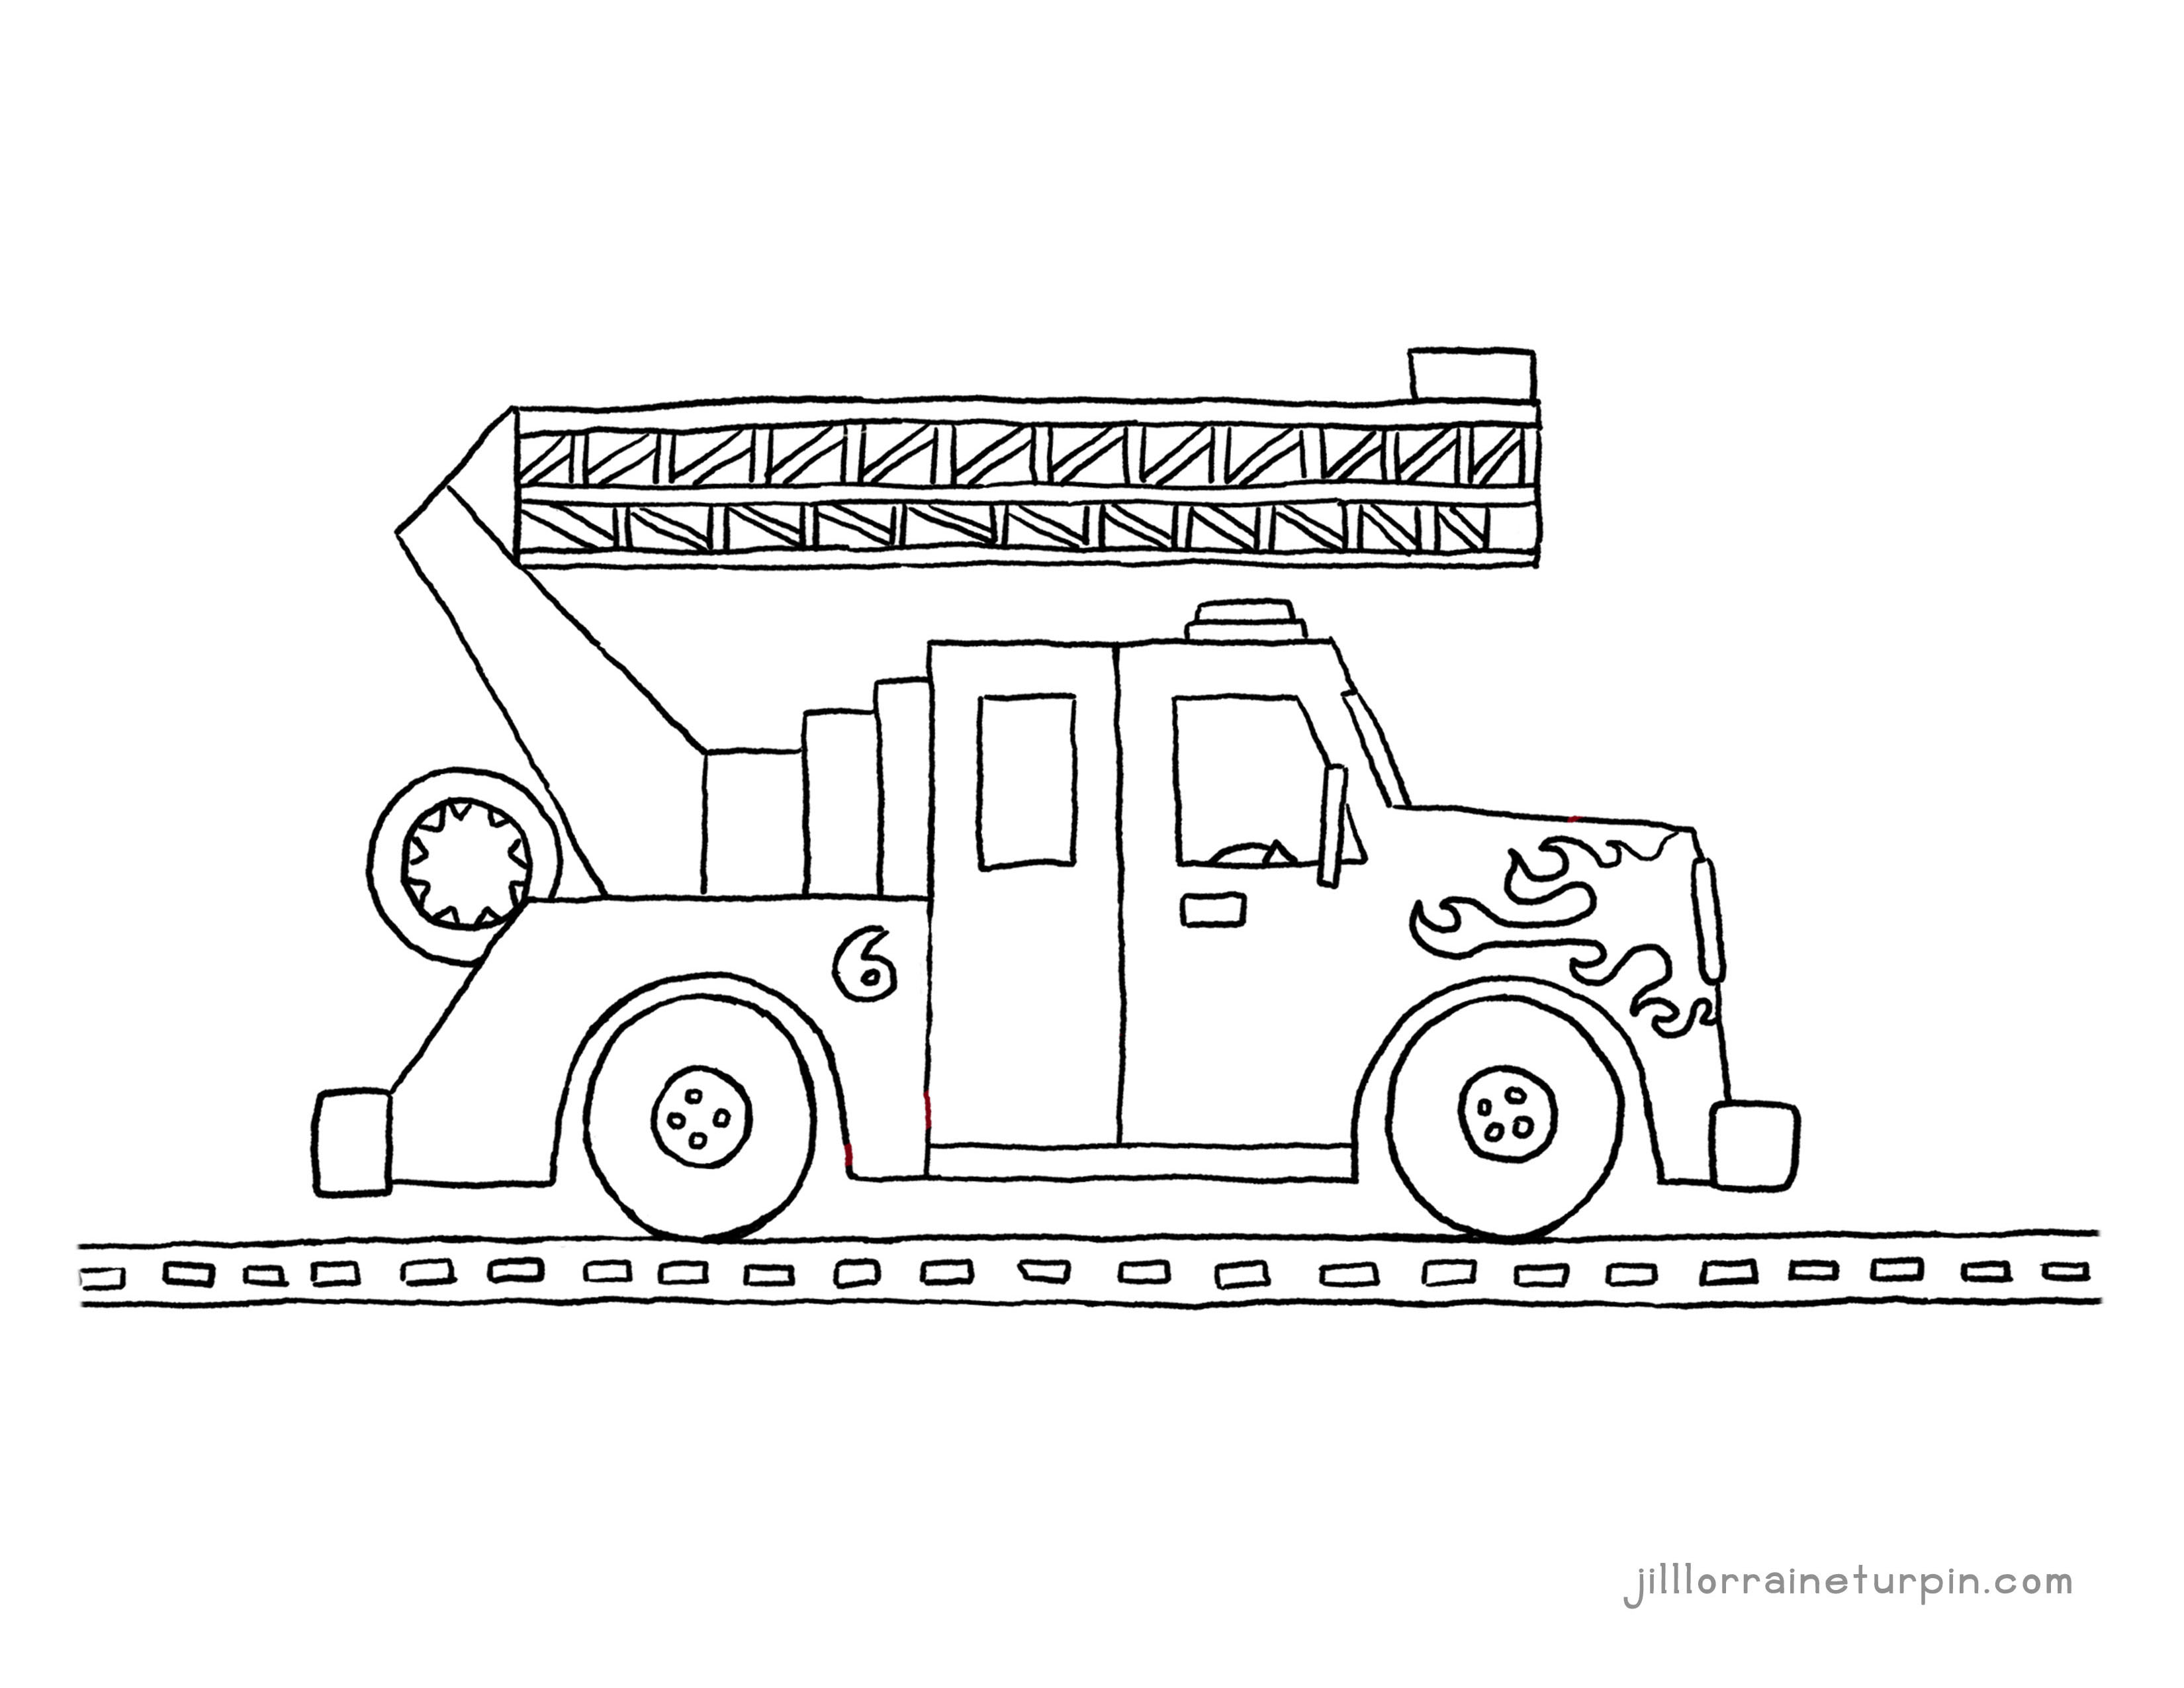 Coloring Pages - My Very Own Fire Truck